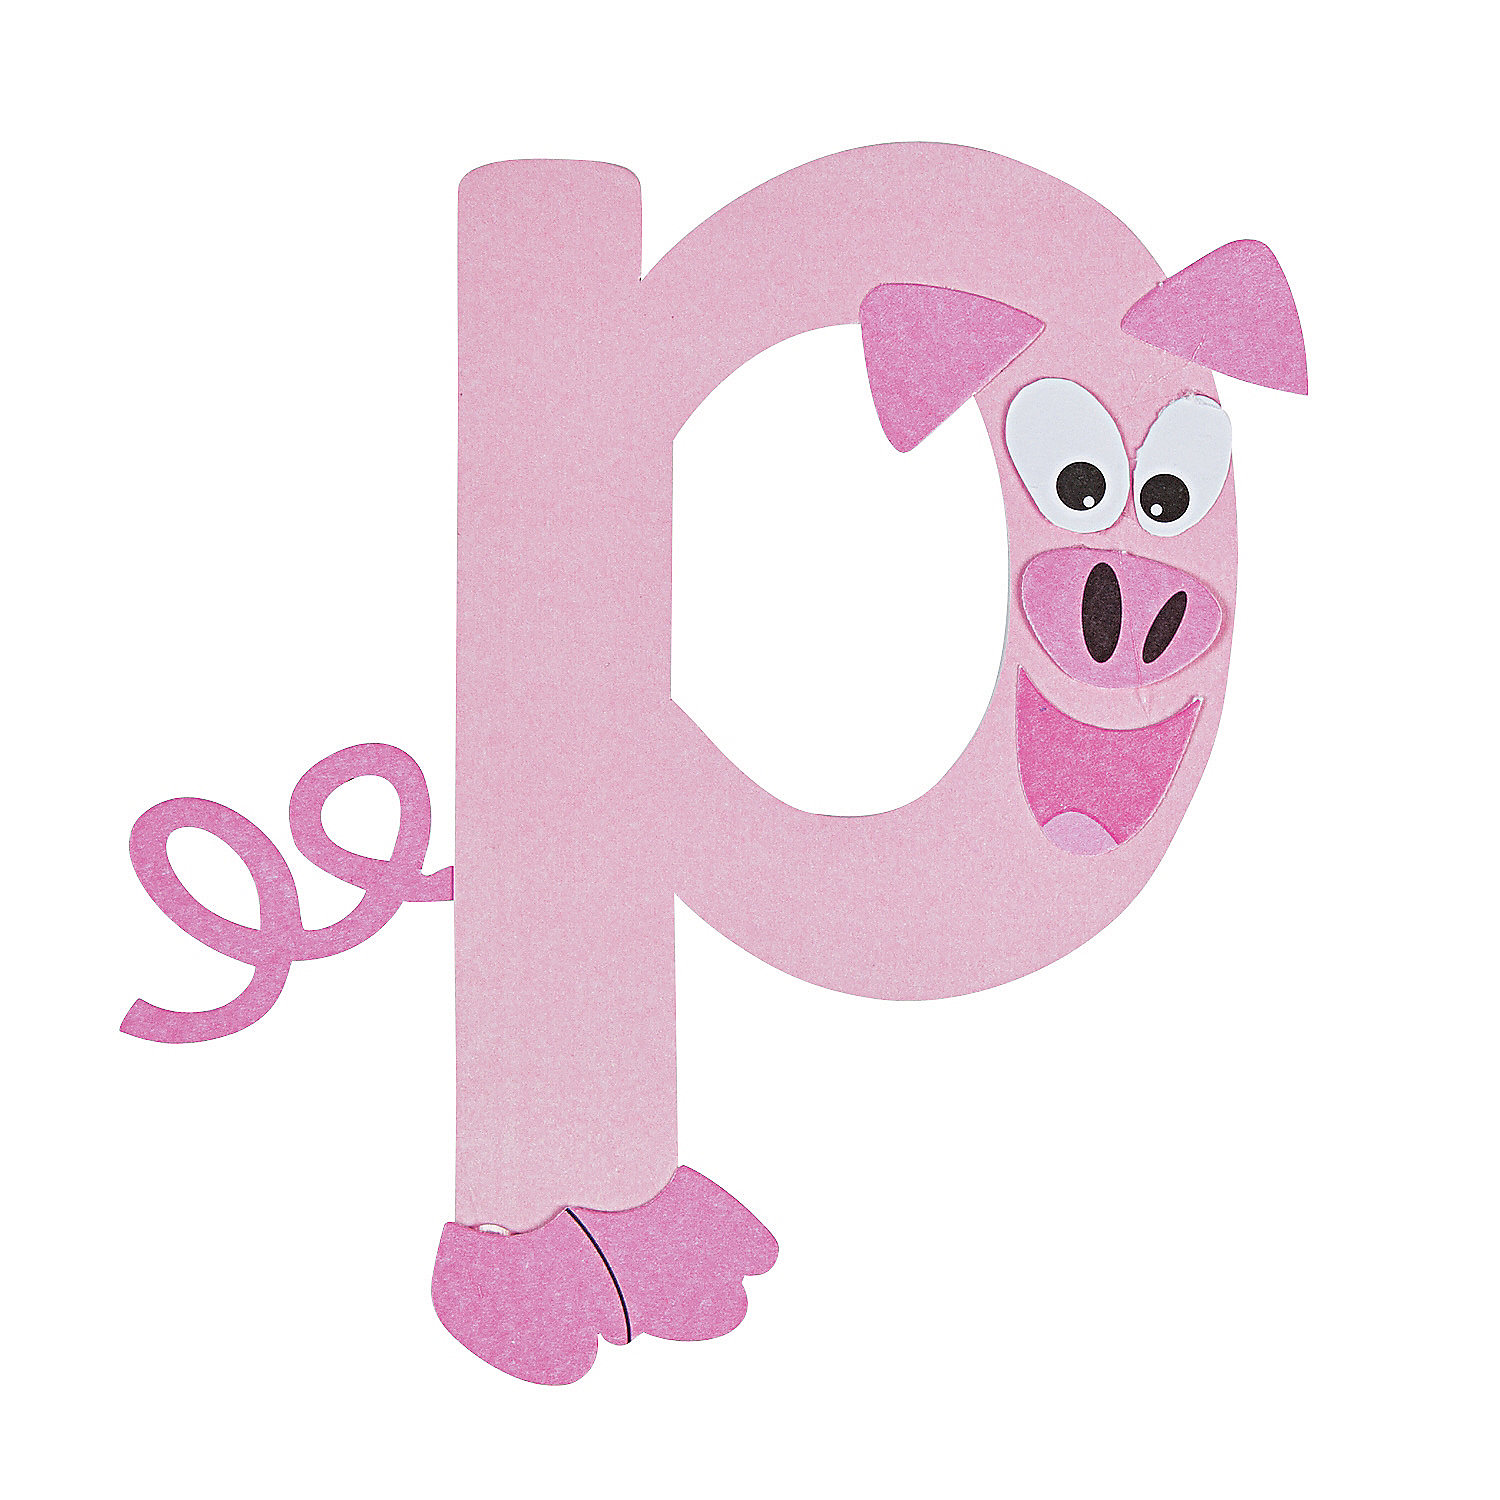 Letter P Crafts İdeas for Preschool - Preschool and ...